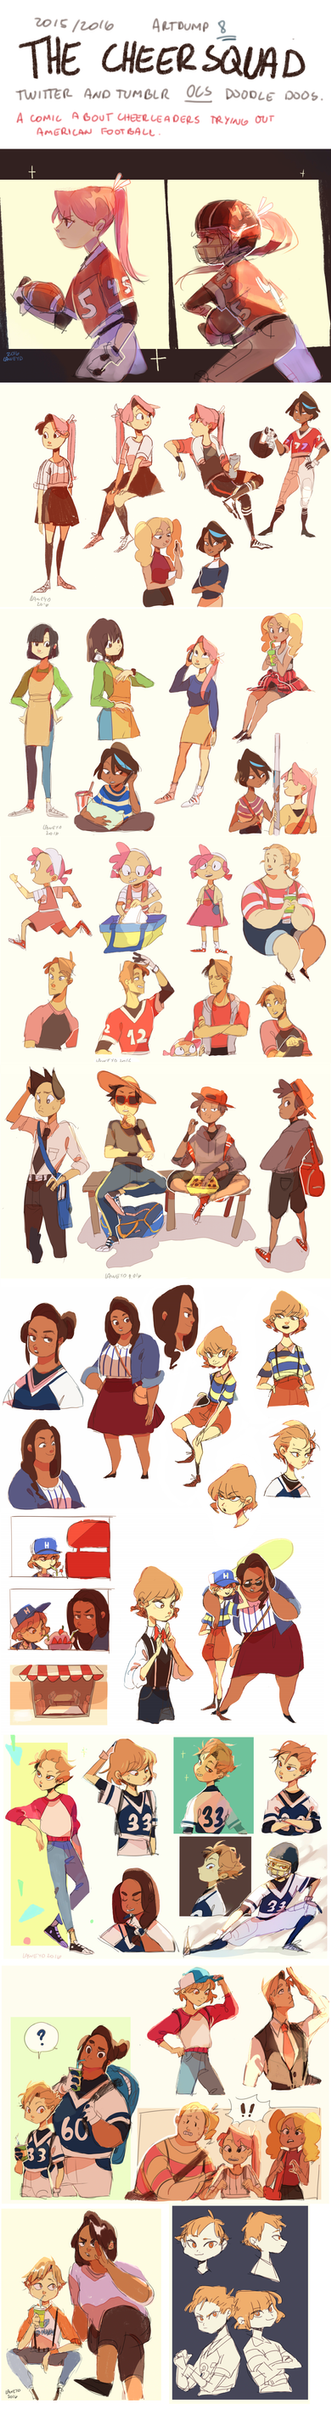 sketchdump 8 - the cheer squad by LaWeyD